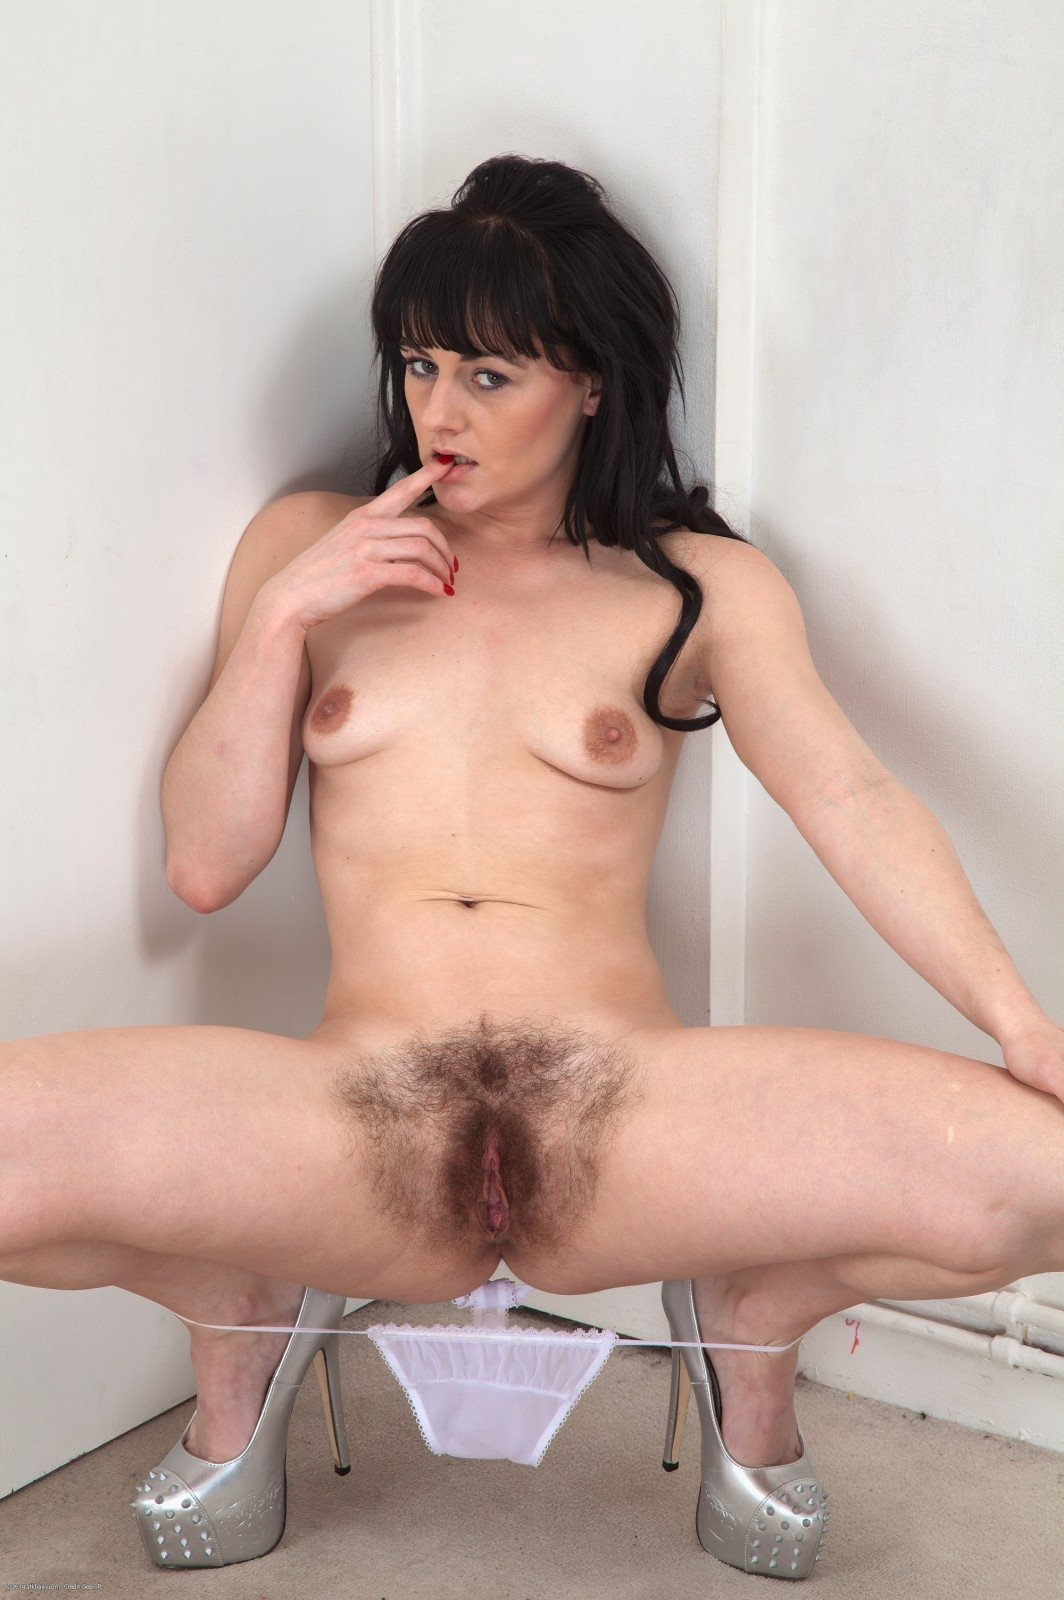 anonymous nude cam site